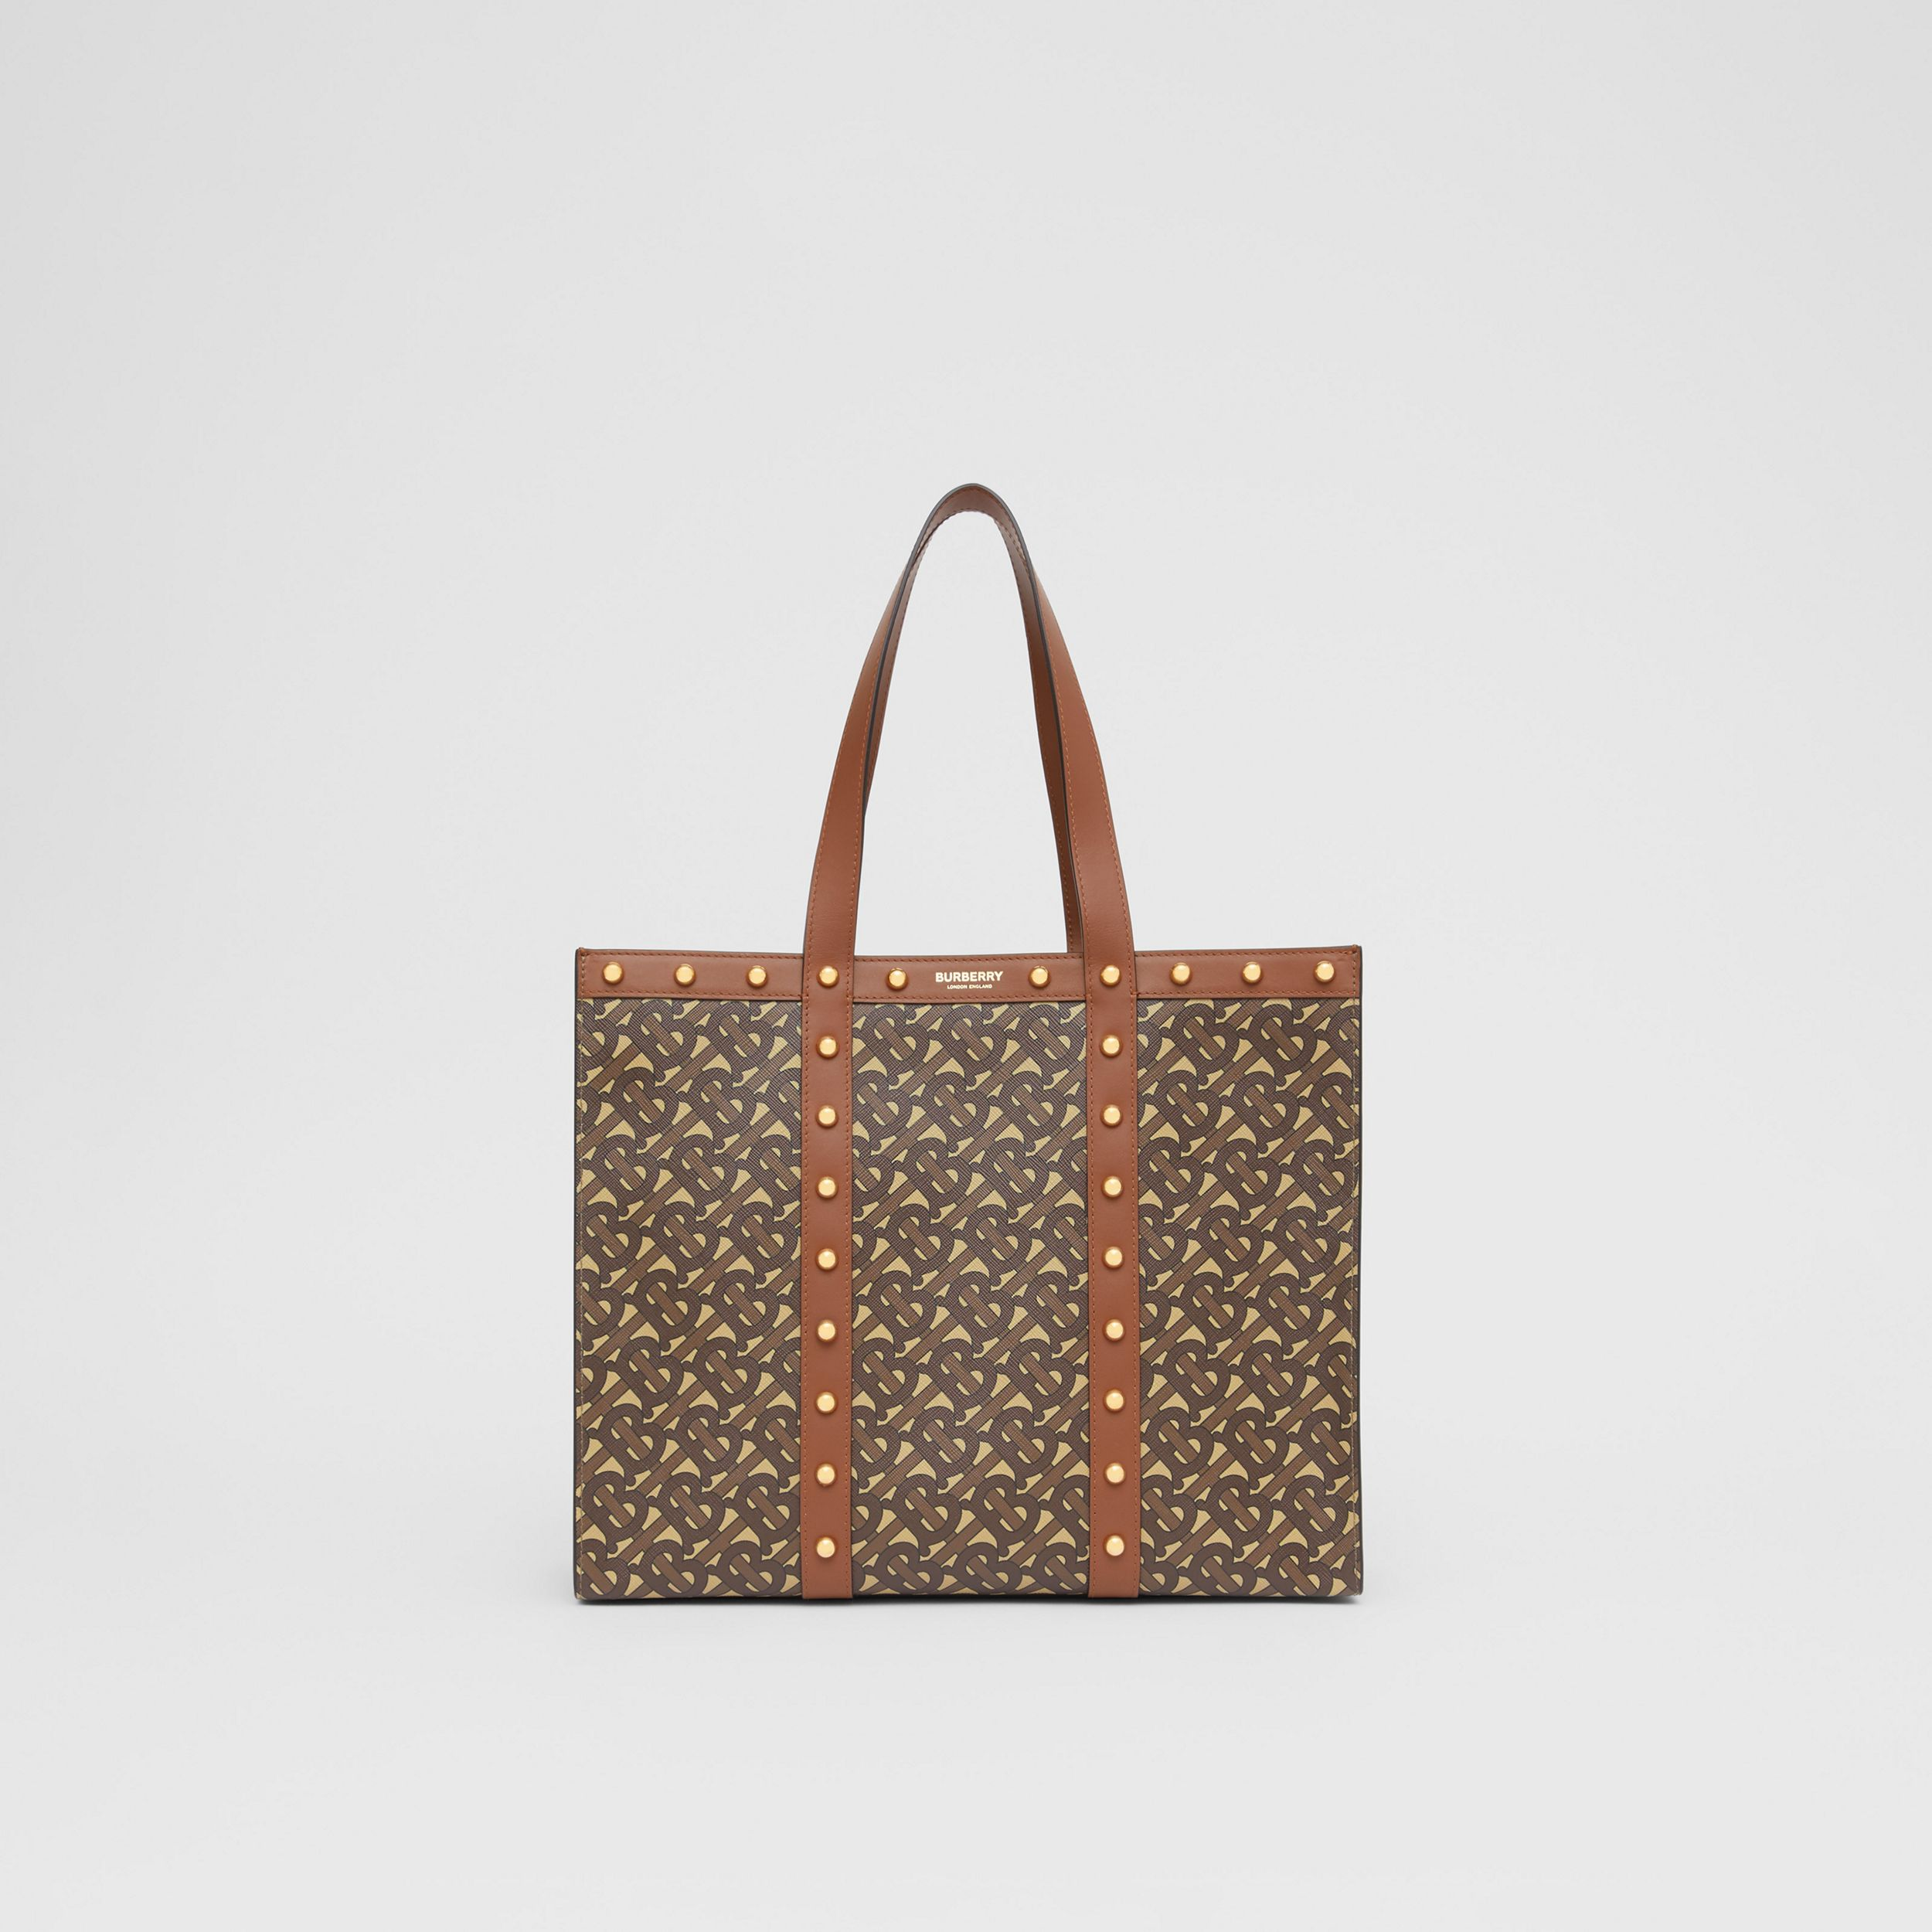 Small Monogram Print E-canvas Tote Bag in Tan | Burberry Hong Kong S.A.R. - 1